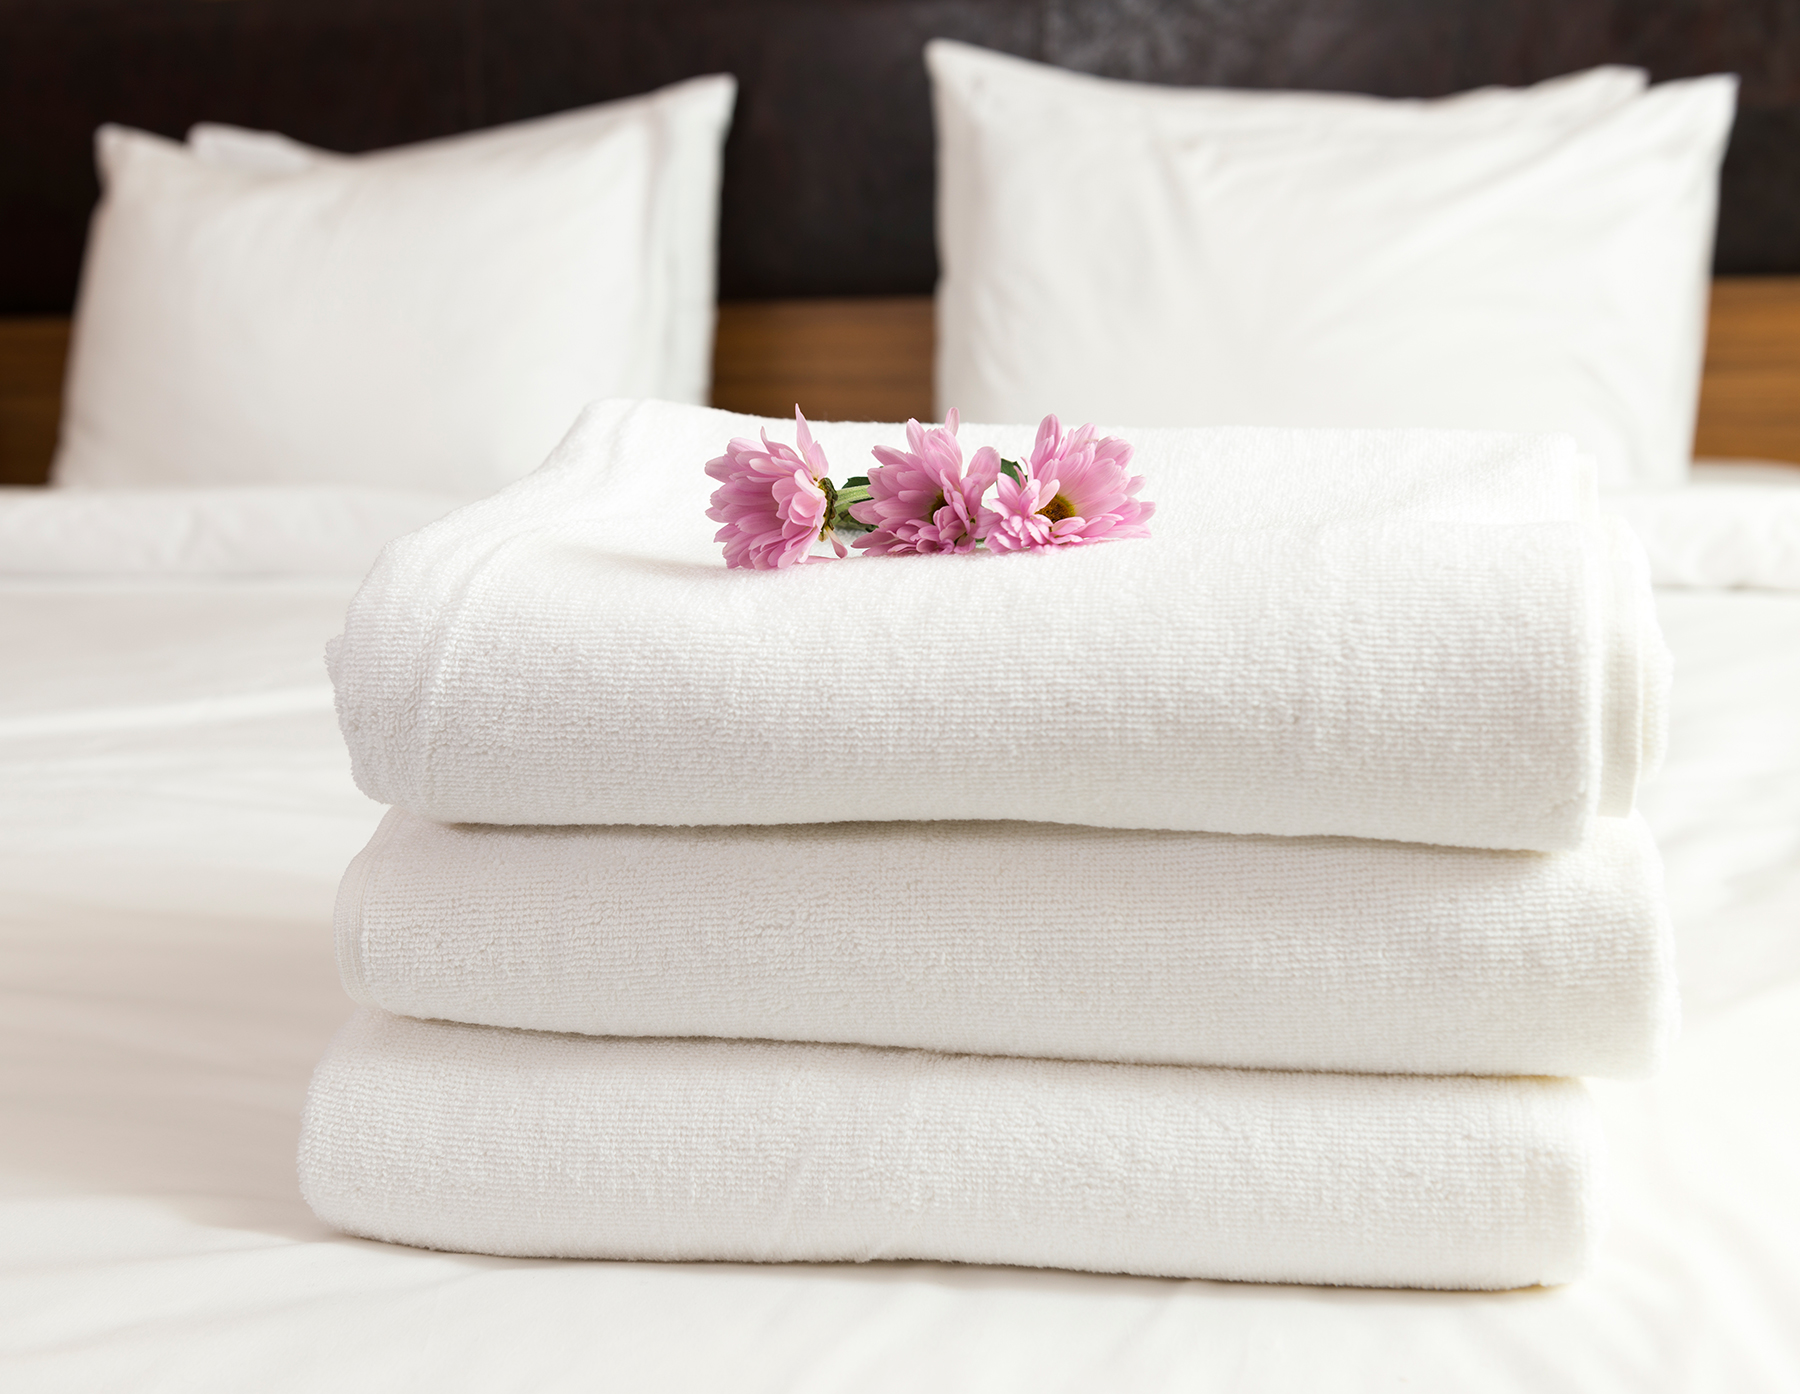 How to Degerm a Hotel Room | Real Simple